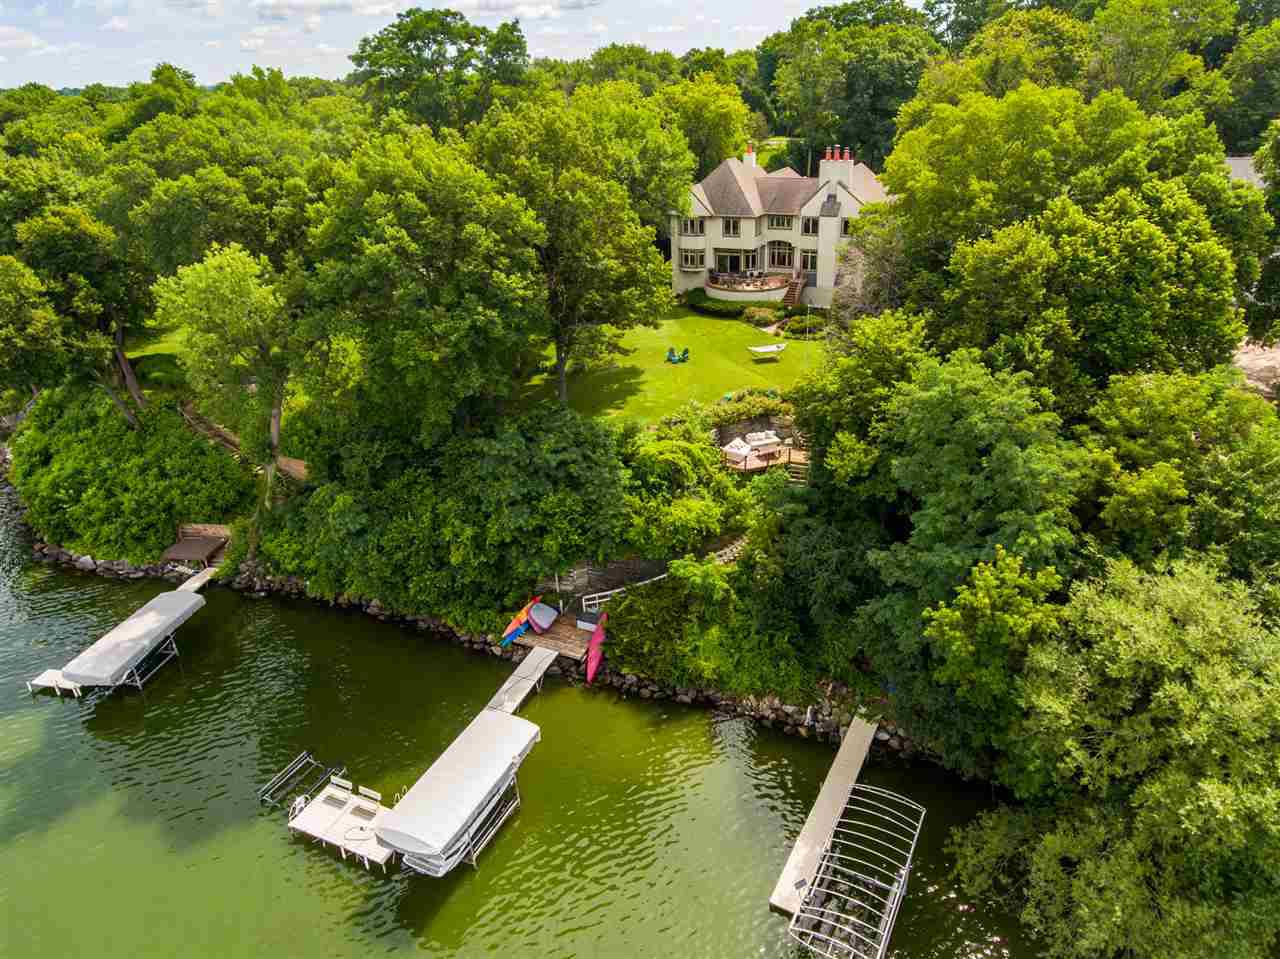 Lakefront living. Incomparable style. Breathtaking views of Lake Mendota w/100' of frontage. Ideal for ?statement? hosting - open, versatile, & unique. Bright kitchen for the gourmet w/premium appliances, dbl ovens, island w/prep sink, etc.Lush yard & large west-facing deck are made for serene sunsets. Upstairs features 4 bdrms, including sumptuous master suite w/dual walk-in closets. Walk-out LL is a playground w/billiards, wine cellar, bar, FP, sauna, exercise rm, & huge family room for game-night or gameday. Au-pair-style apartment (bath, kitch?et, semi-priv entry) provides options for family, friends, & live-in help. Priceless location right across the street from award-winning MBCC golf course's hole #13. Welcome to this sought-after Village - where you'll love staying at home!